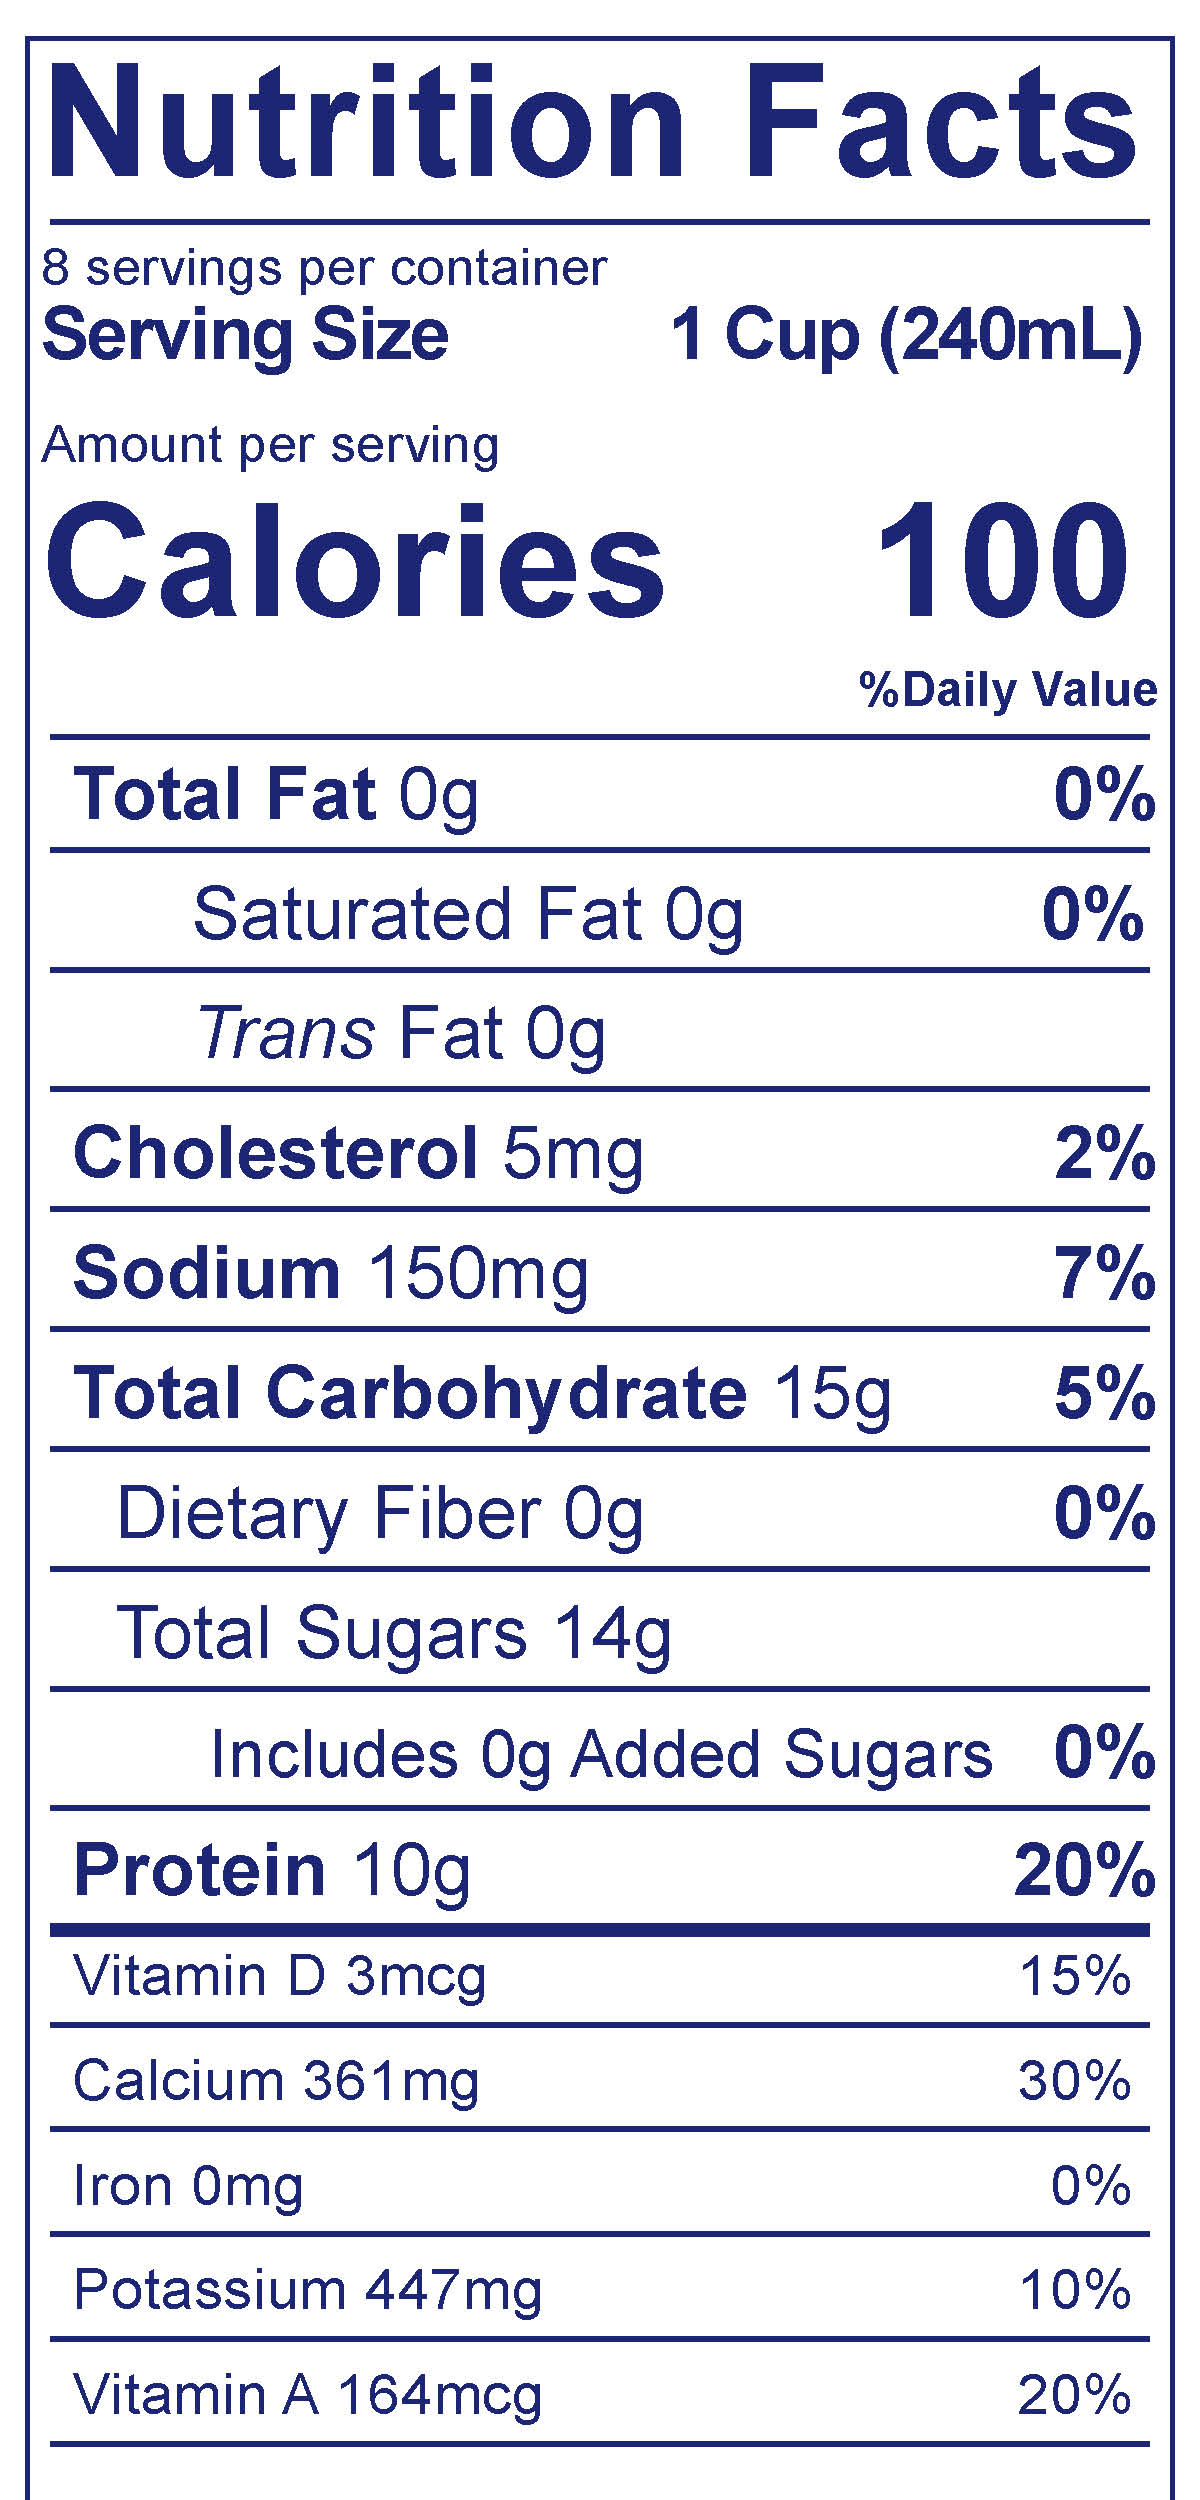 Fat Free Milk - Nutrition Facts